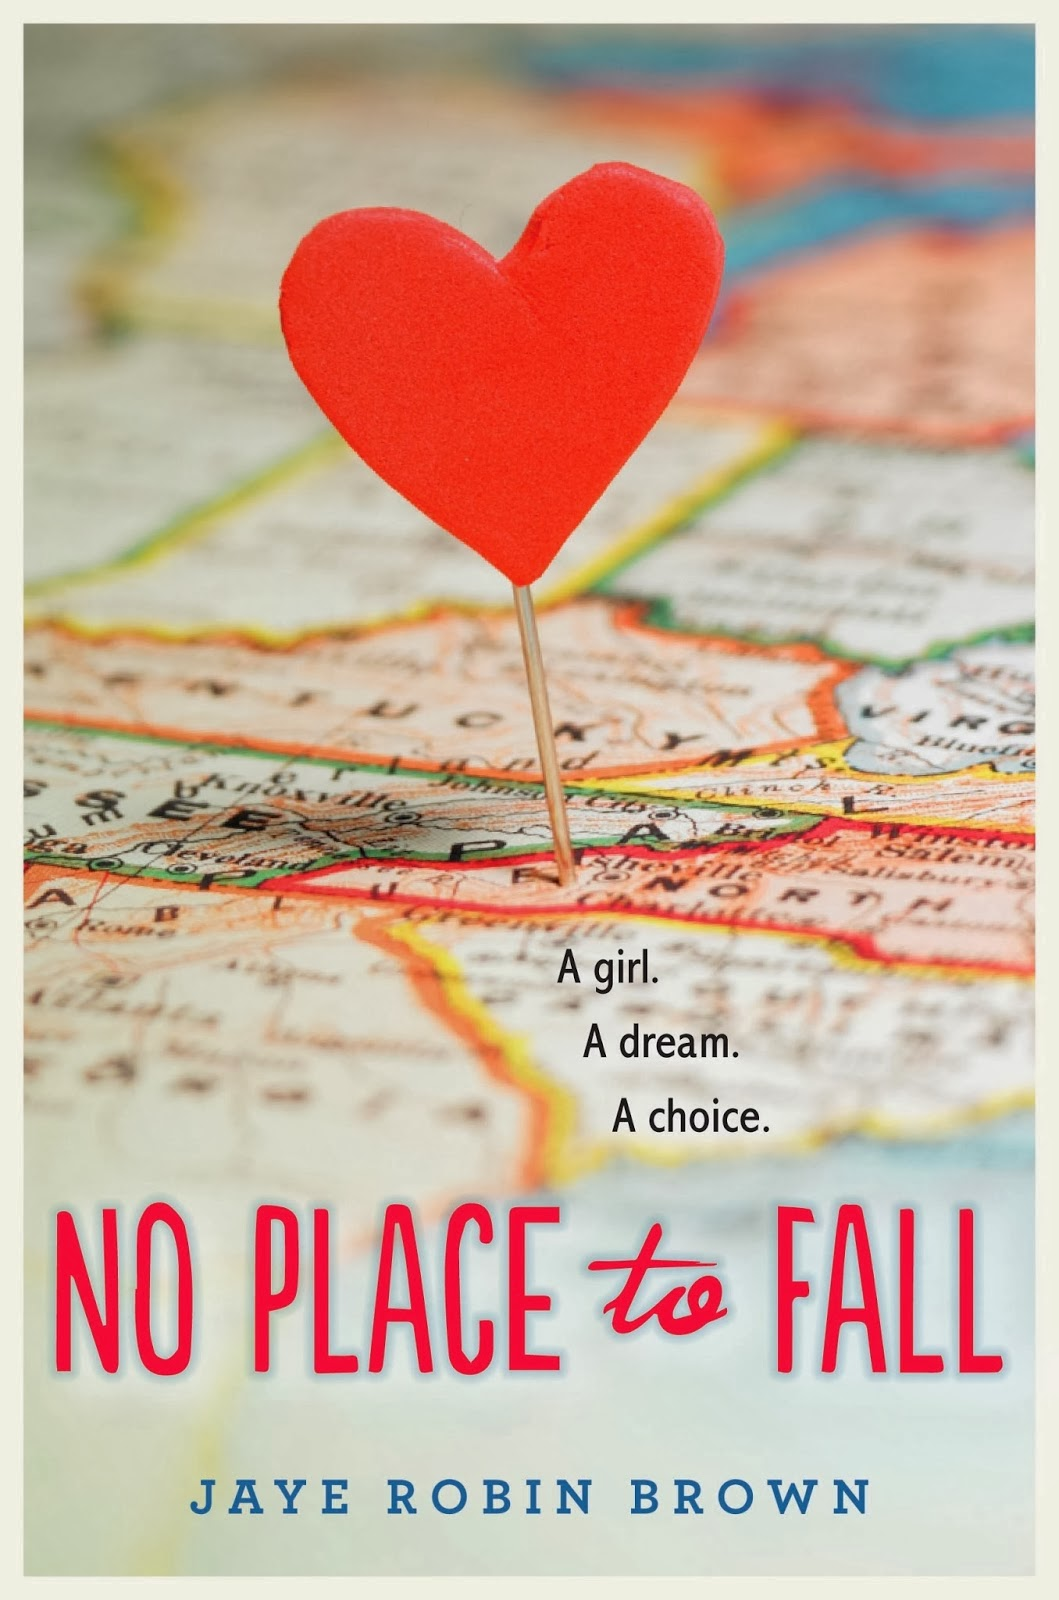 No Place to Fall by Jaye Robin Brown  Amazon  |  Goodreads